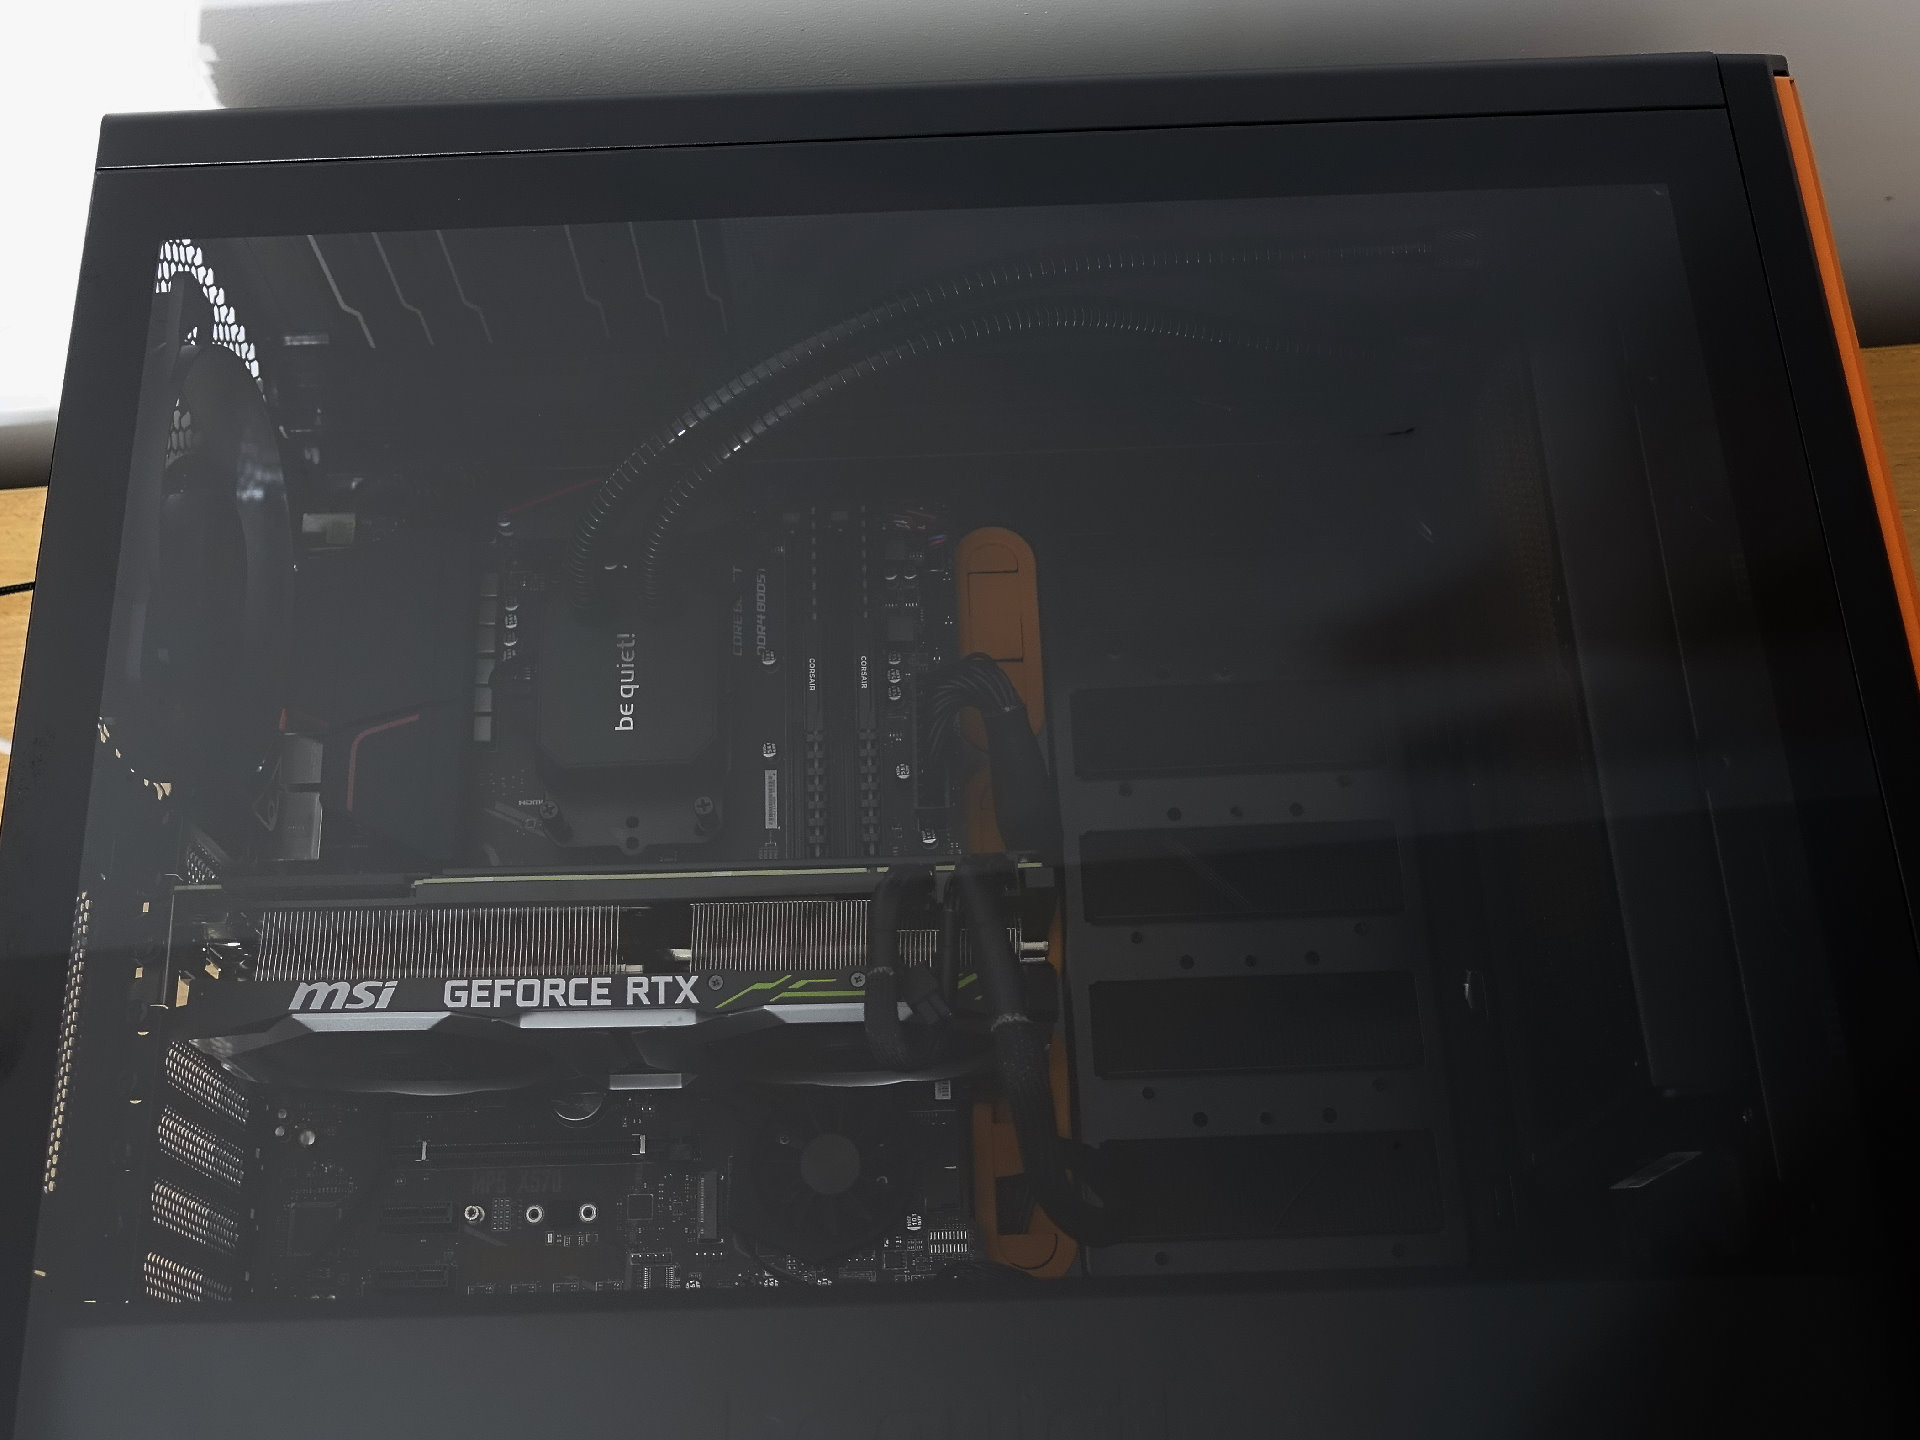 Image 11 : [MàJ] PC gaming Tom's Hardware : OC et guide d'optimisation X570 / 3600X